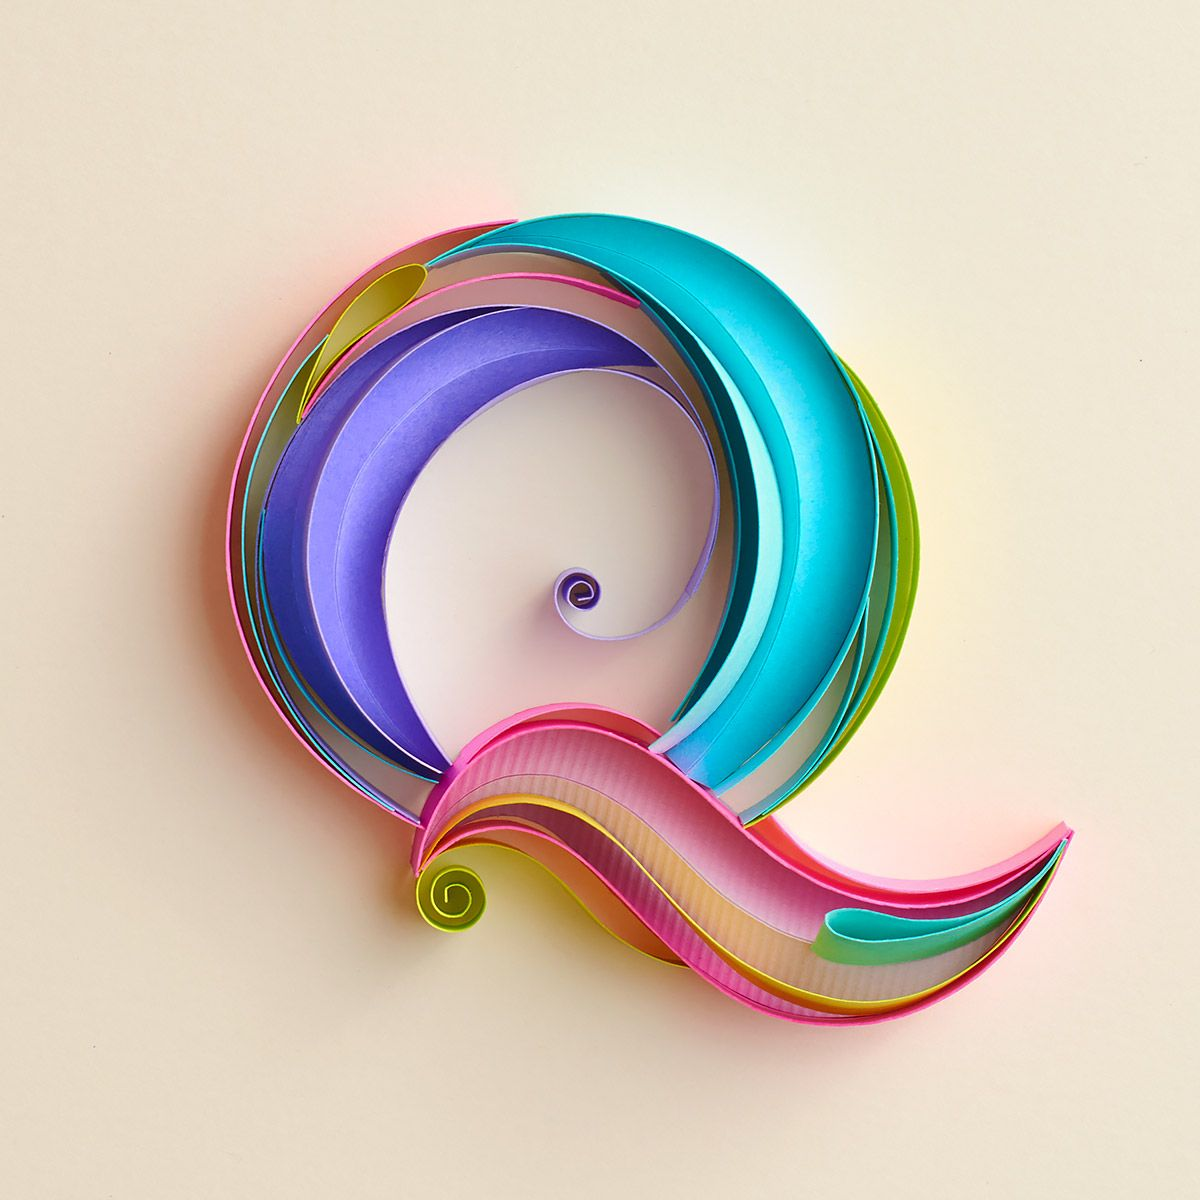 New Typographic Paper Artworks by Sabeena Karnik (With